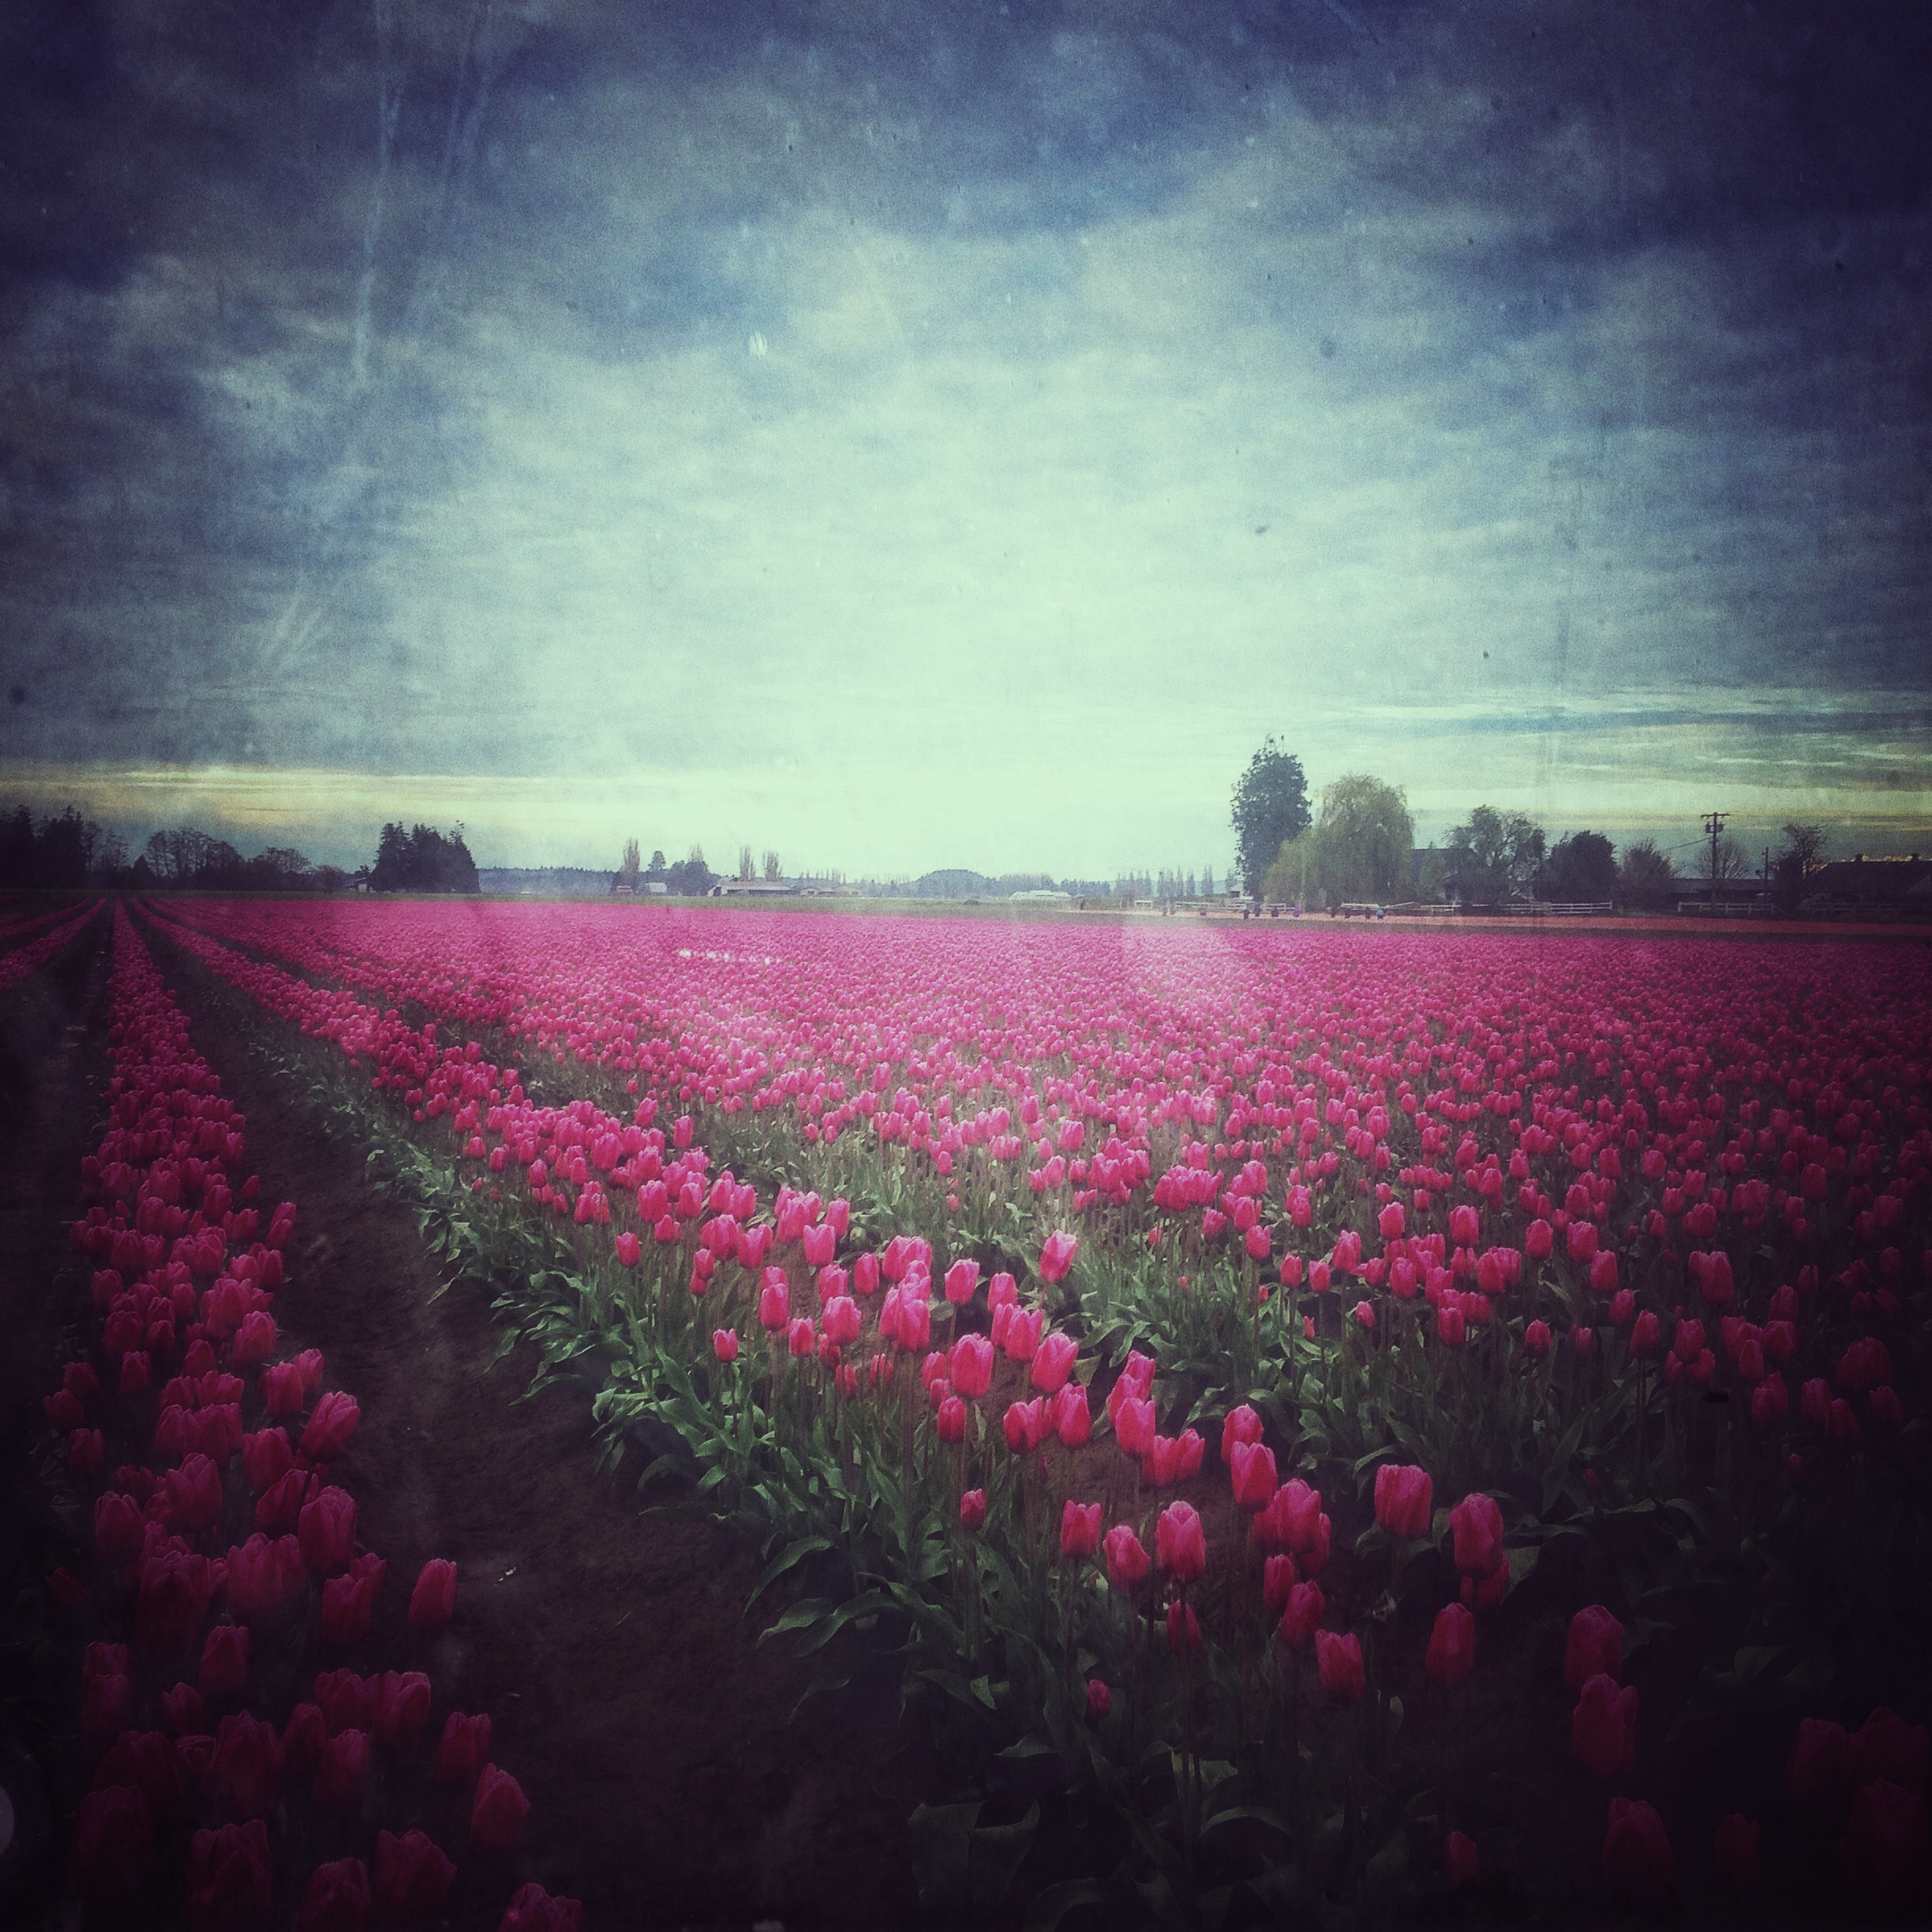 Rows of Tulips. Photographe, 2016. M. Lamery